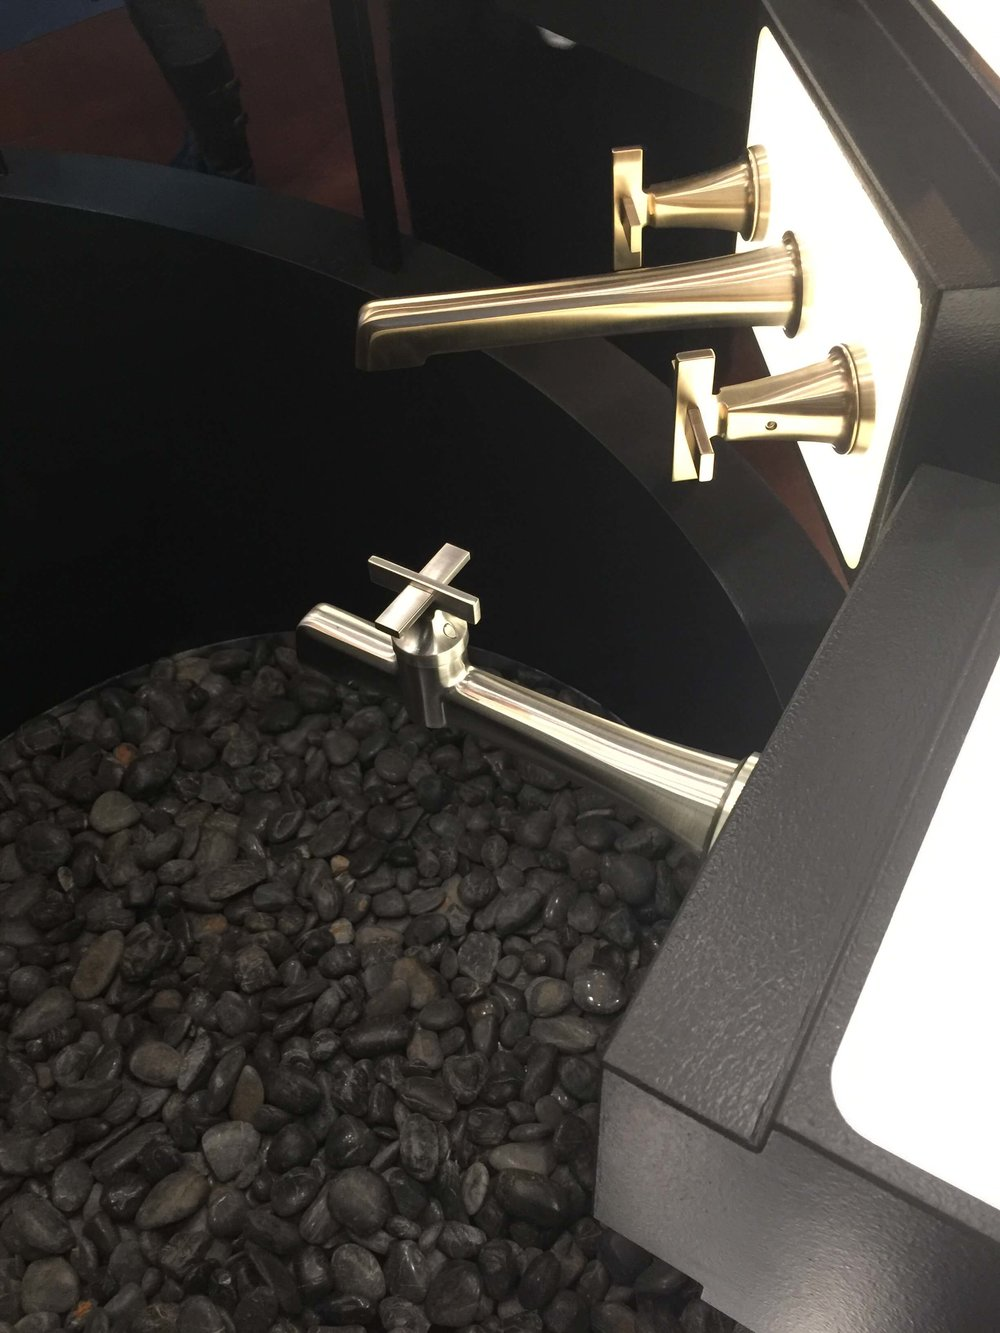 Brizo tub filler #wallmountfaucet